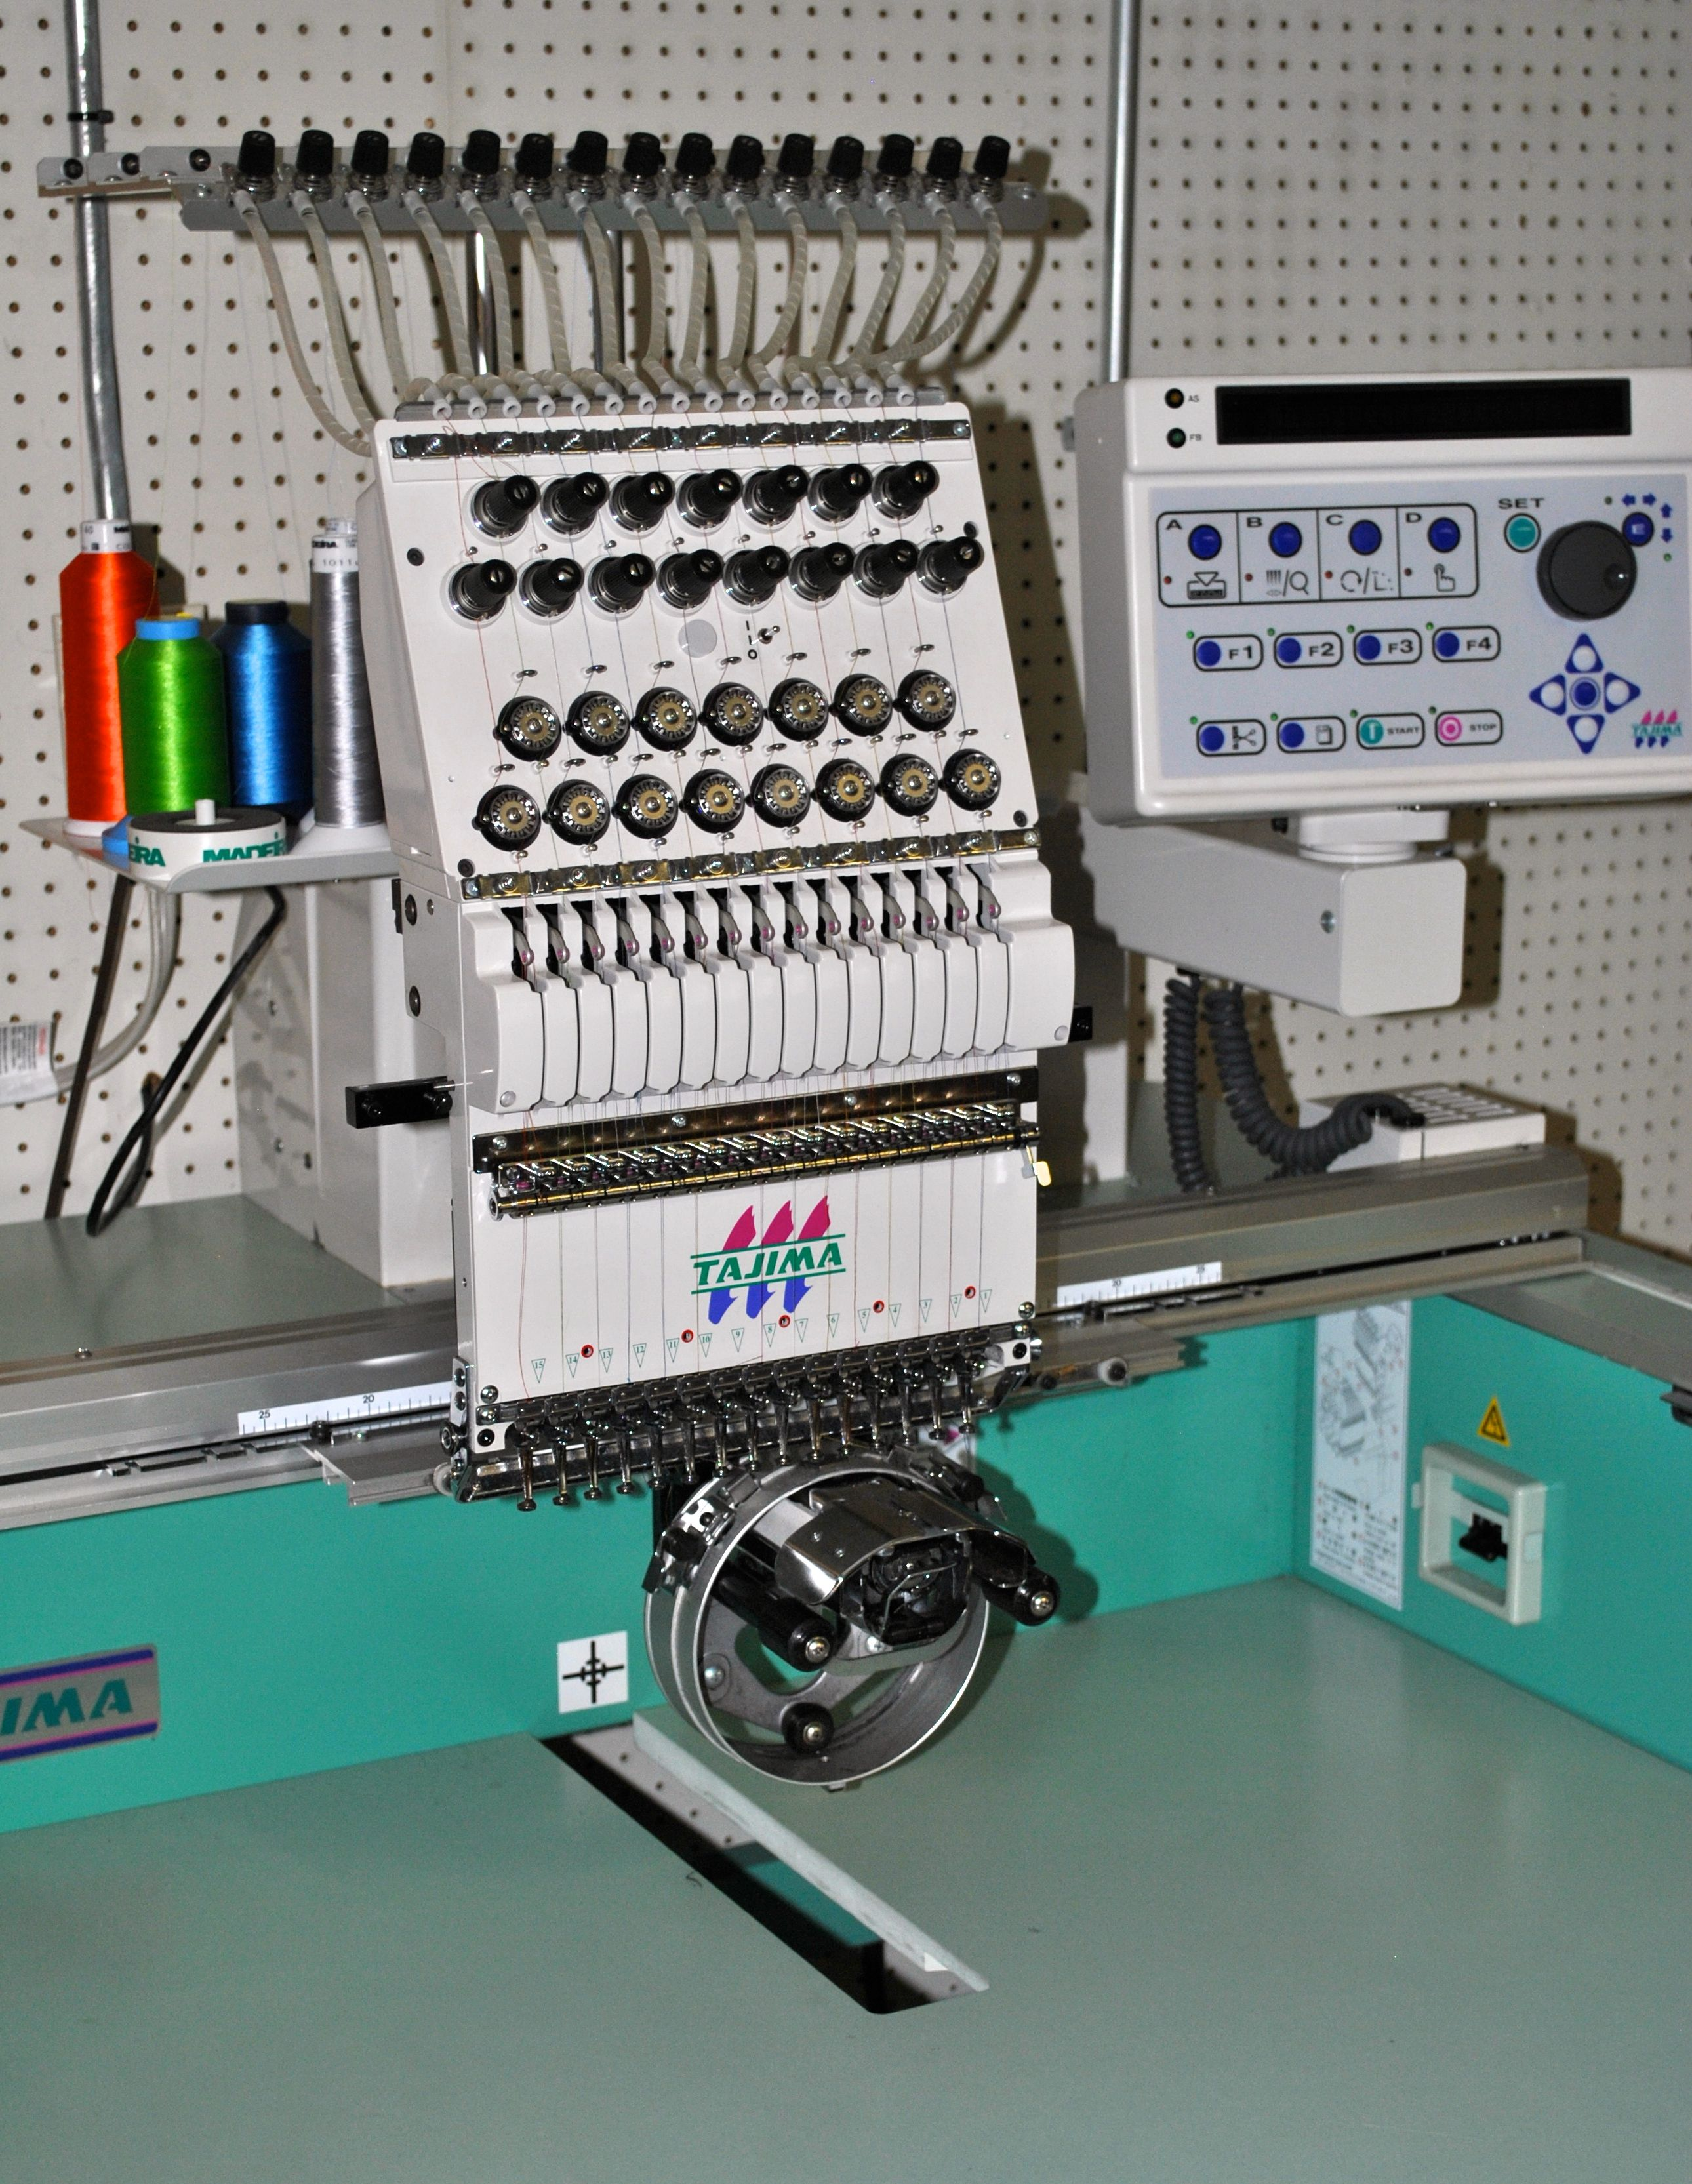 Tajima Embroidery Machine With Thread